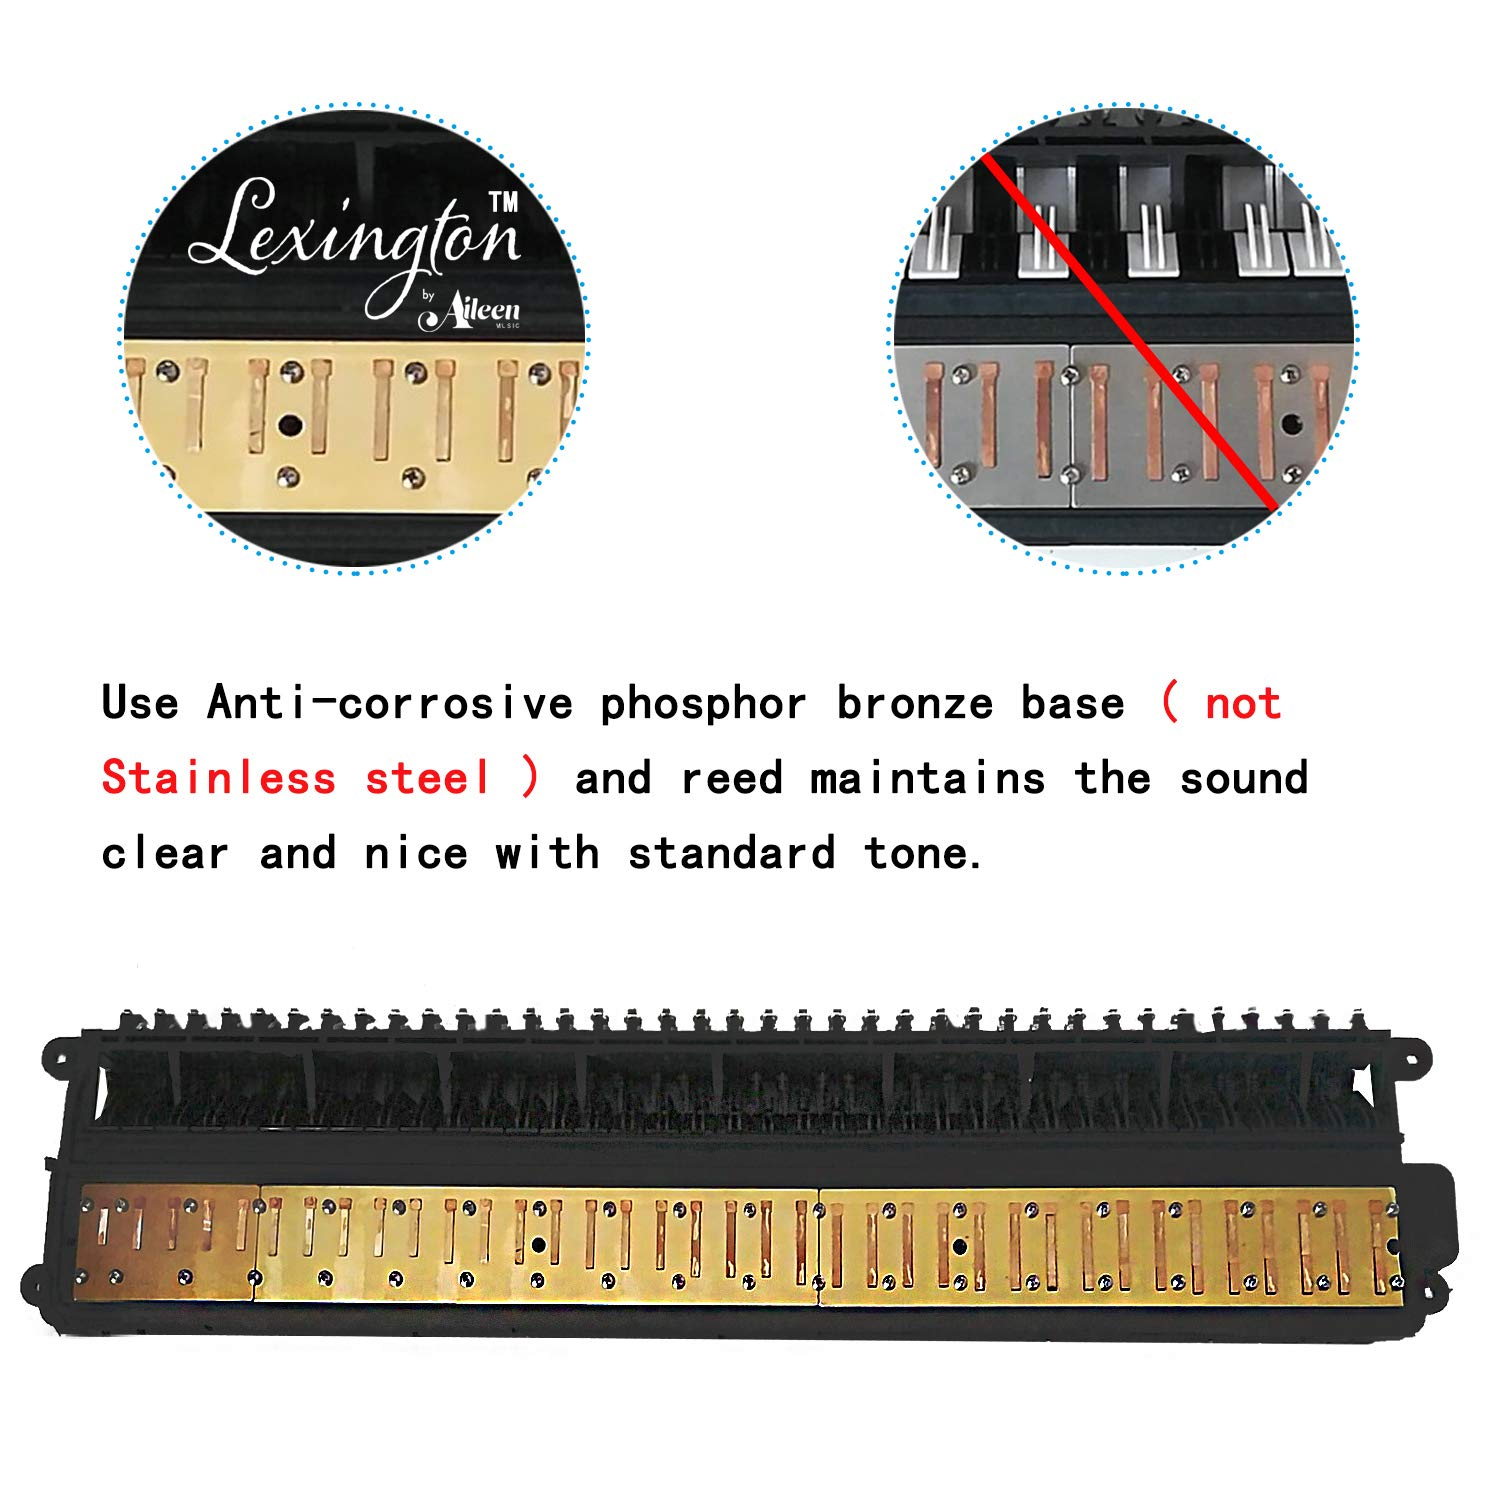 32 Piano Keys Melodica Made of Bronze Base and Reed, Package Includes 1 Carrying Case,1 Short, 2 Long Mouthpieces by Aileen (Image #2)